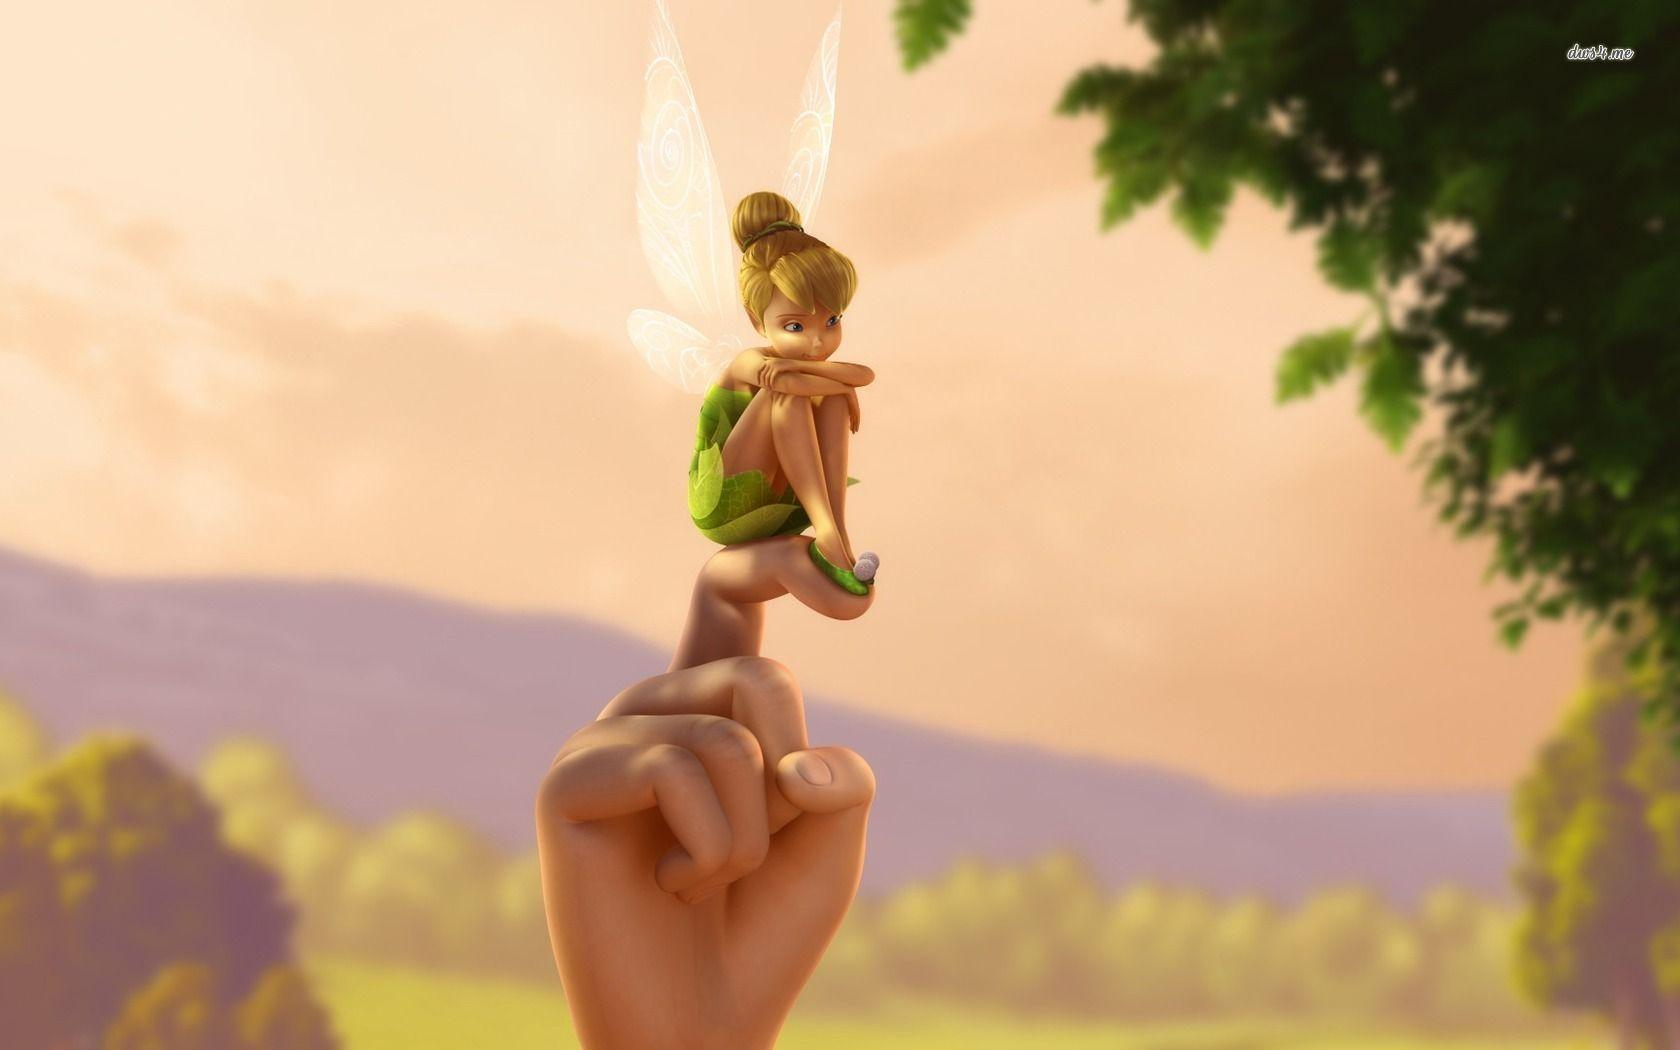 Tinkerbell Wallpapers - Wallpaper Cave